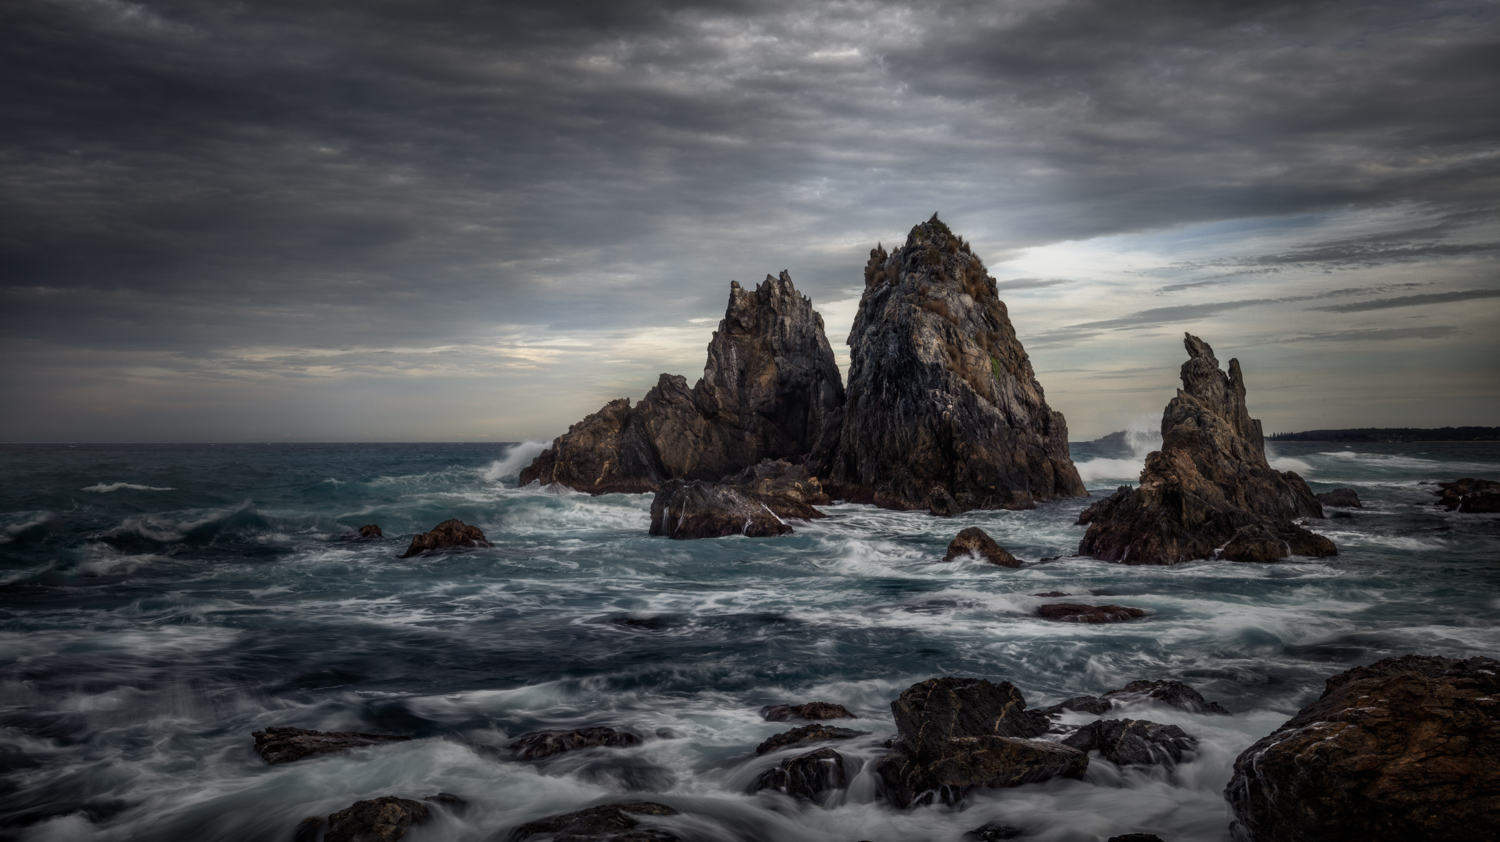 Seascape Photography Workshop Tours - Bermagui, NSW, Australia by George Triantafillou